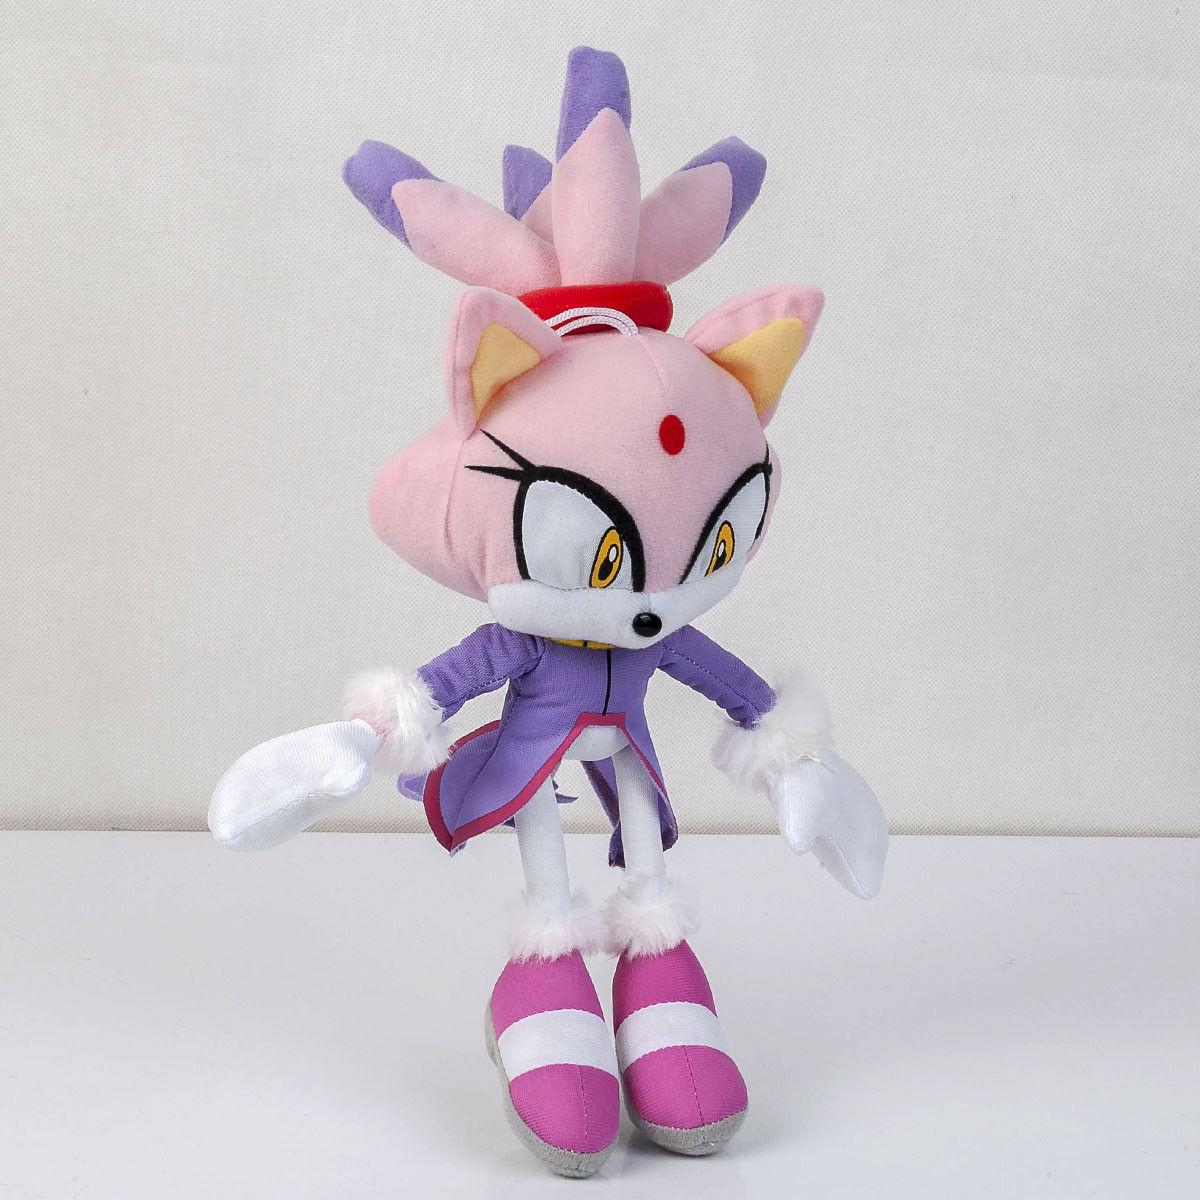 Sonic The Hedgehog Toy Figure Doll